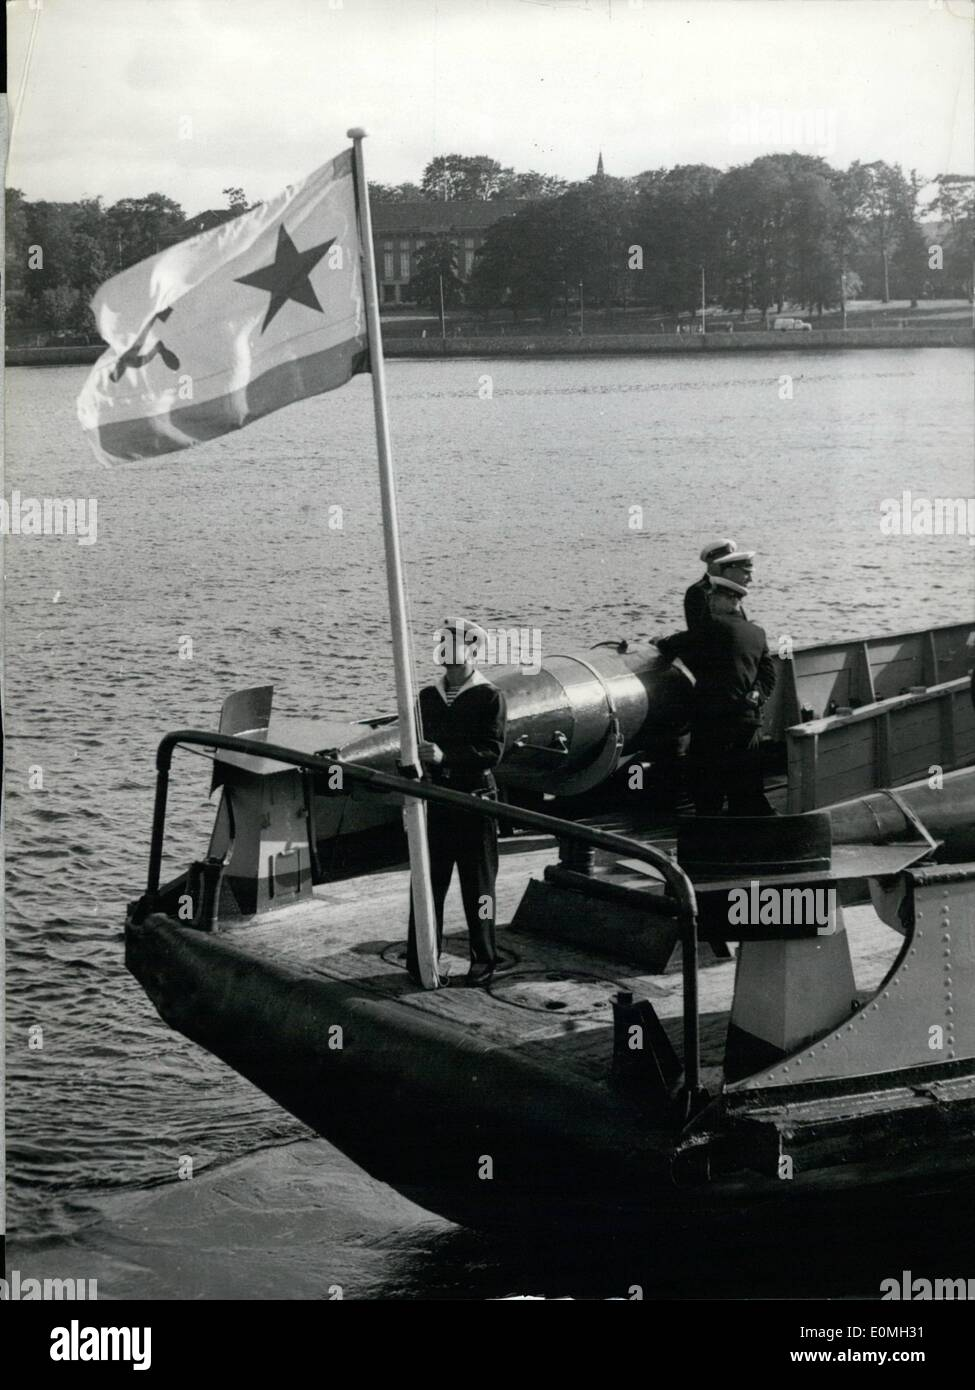 Jul. 07, 1955 - Lent-ships return from Russia to USA: 14 ships, which had been lent to the Soviet by USA during world war II., were returned by the Soviets on saturday at Kiel/Germany. Photo shows the hauling in of the Soviet-flag. - Stock Image